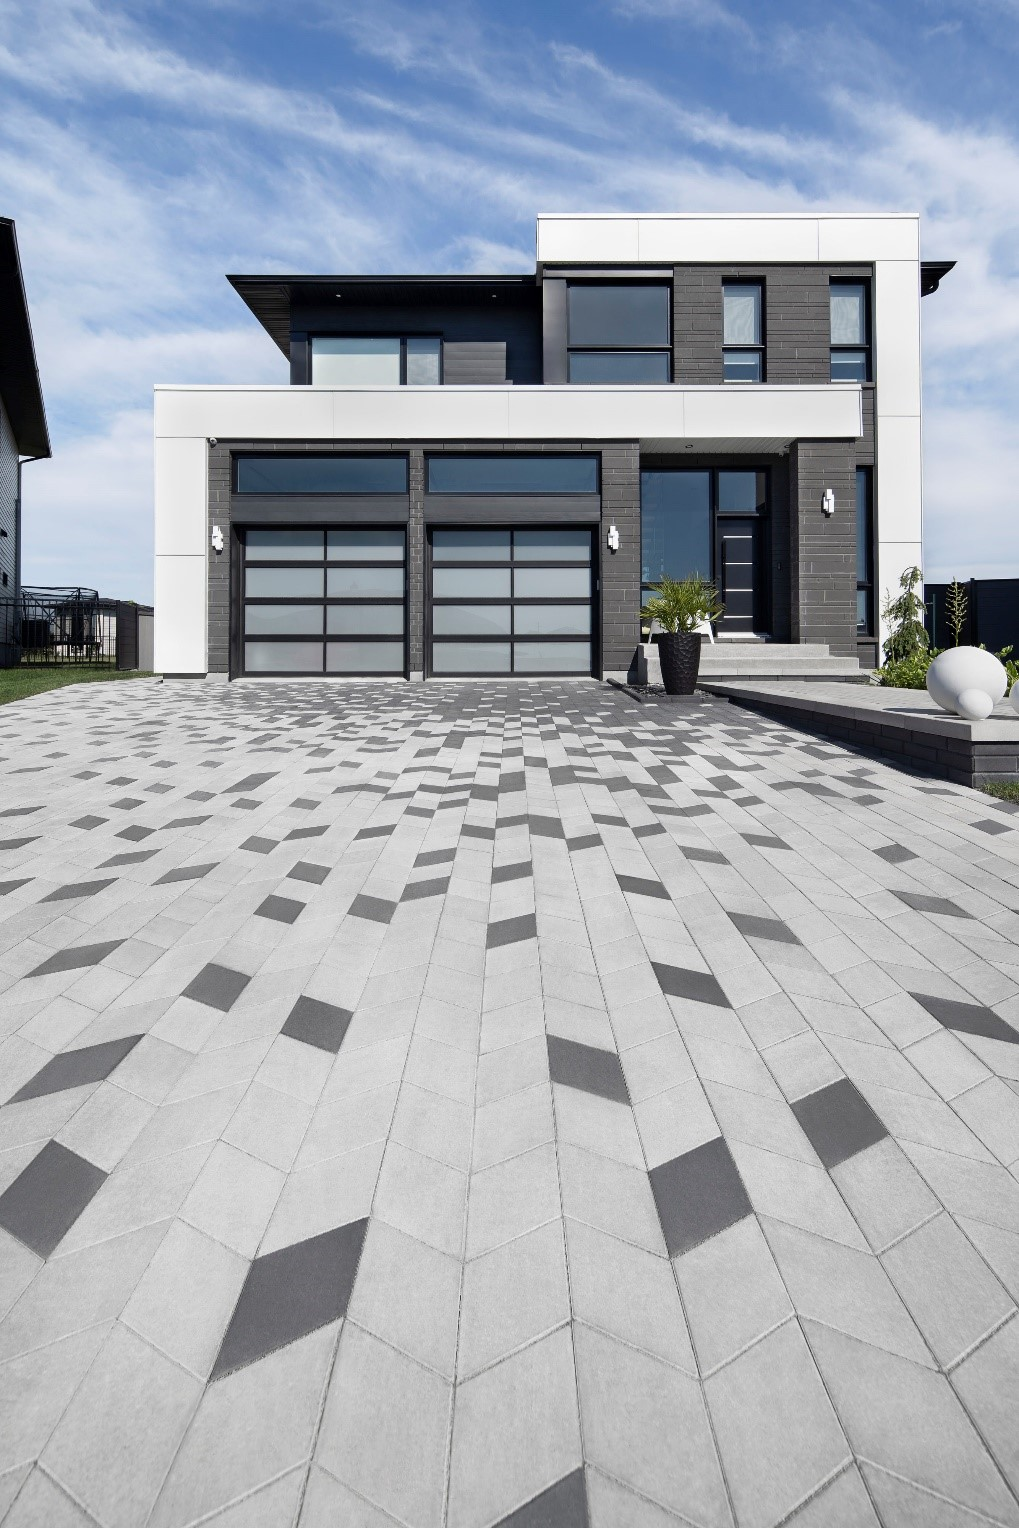 Diamond paver in Greyed Nickel and Onyx Black